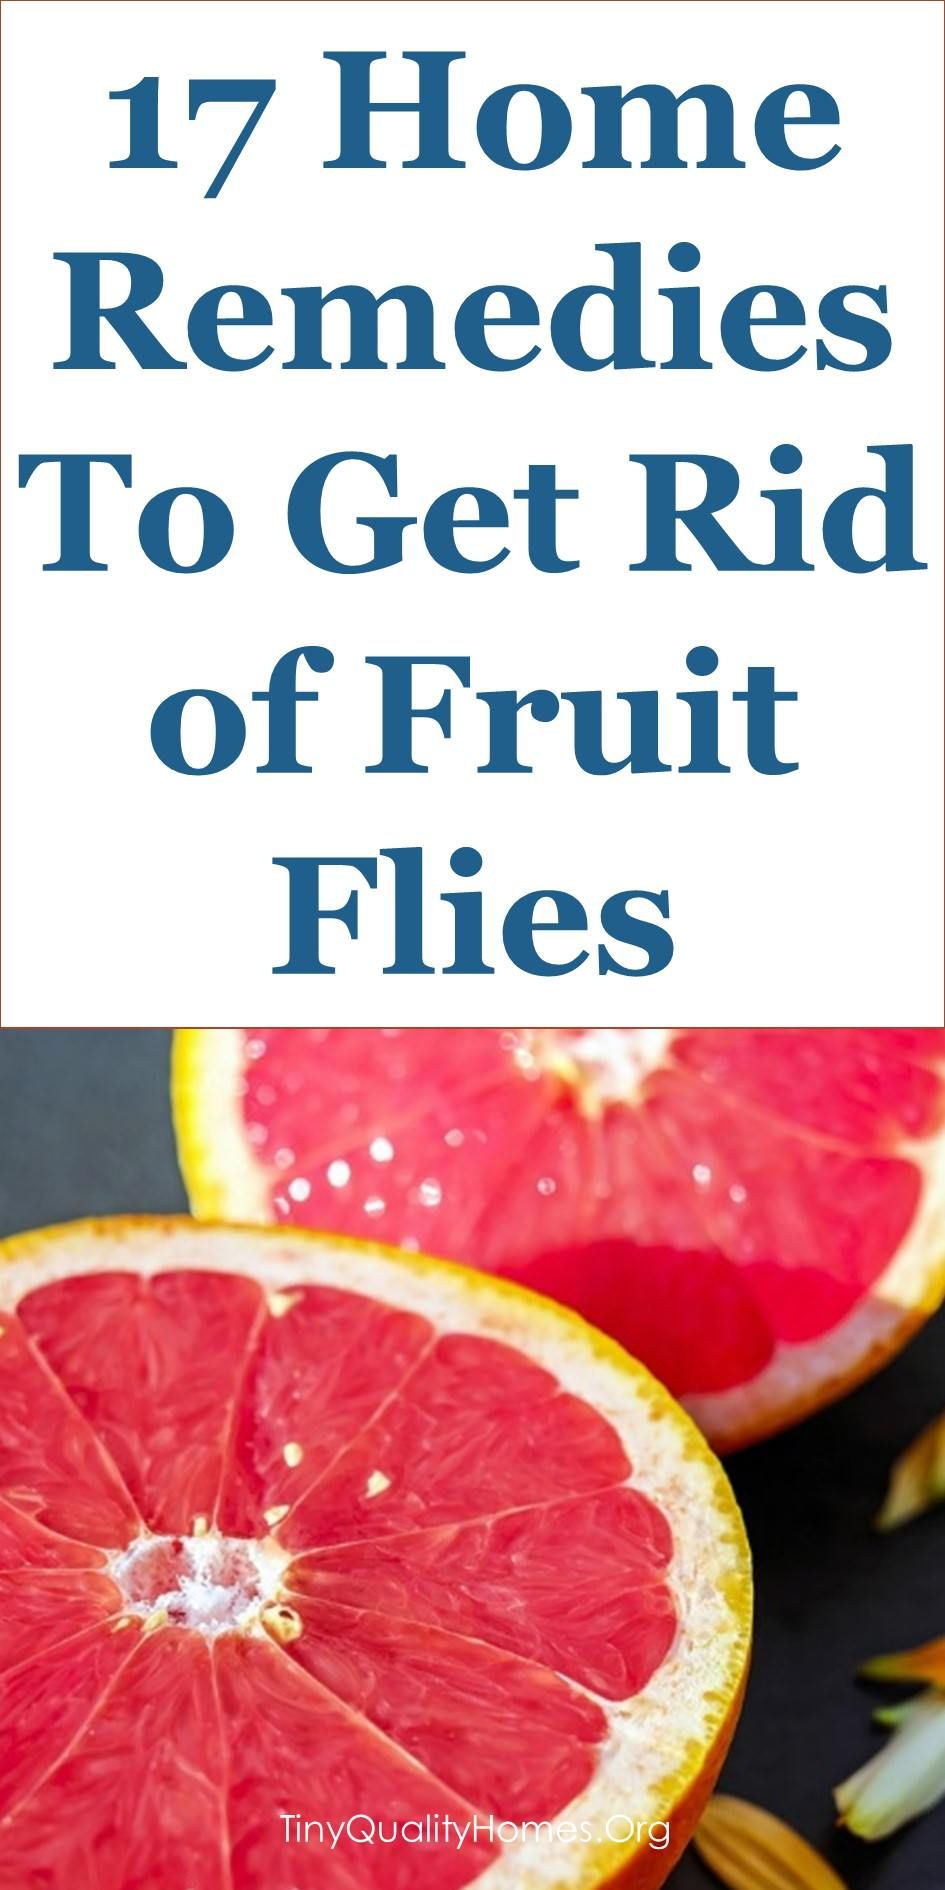 17 Home Remedies Fruit Fly Traps To Get Rid Of Fruit Flies